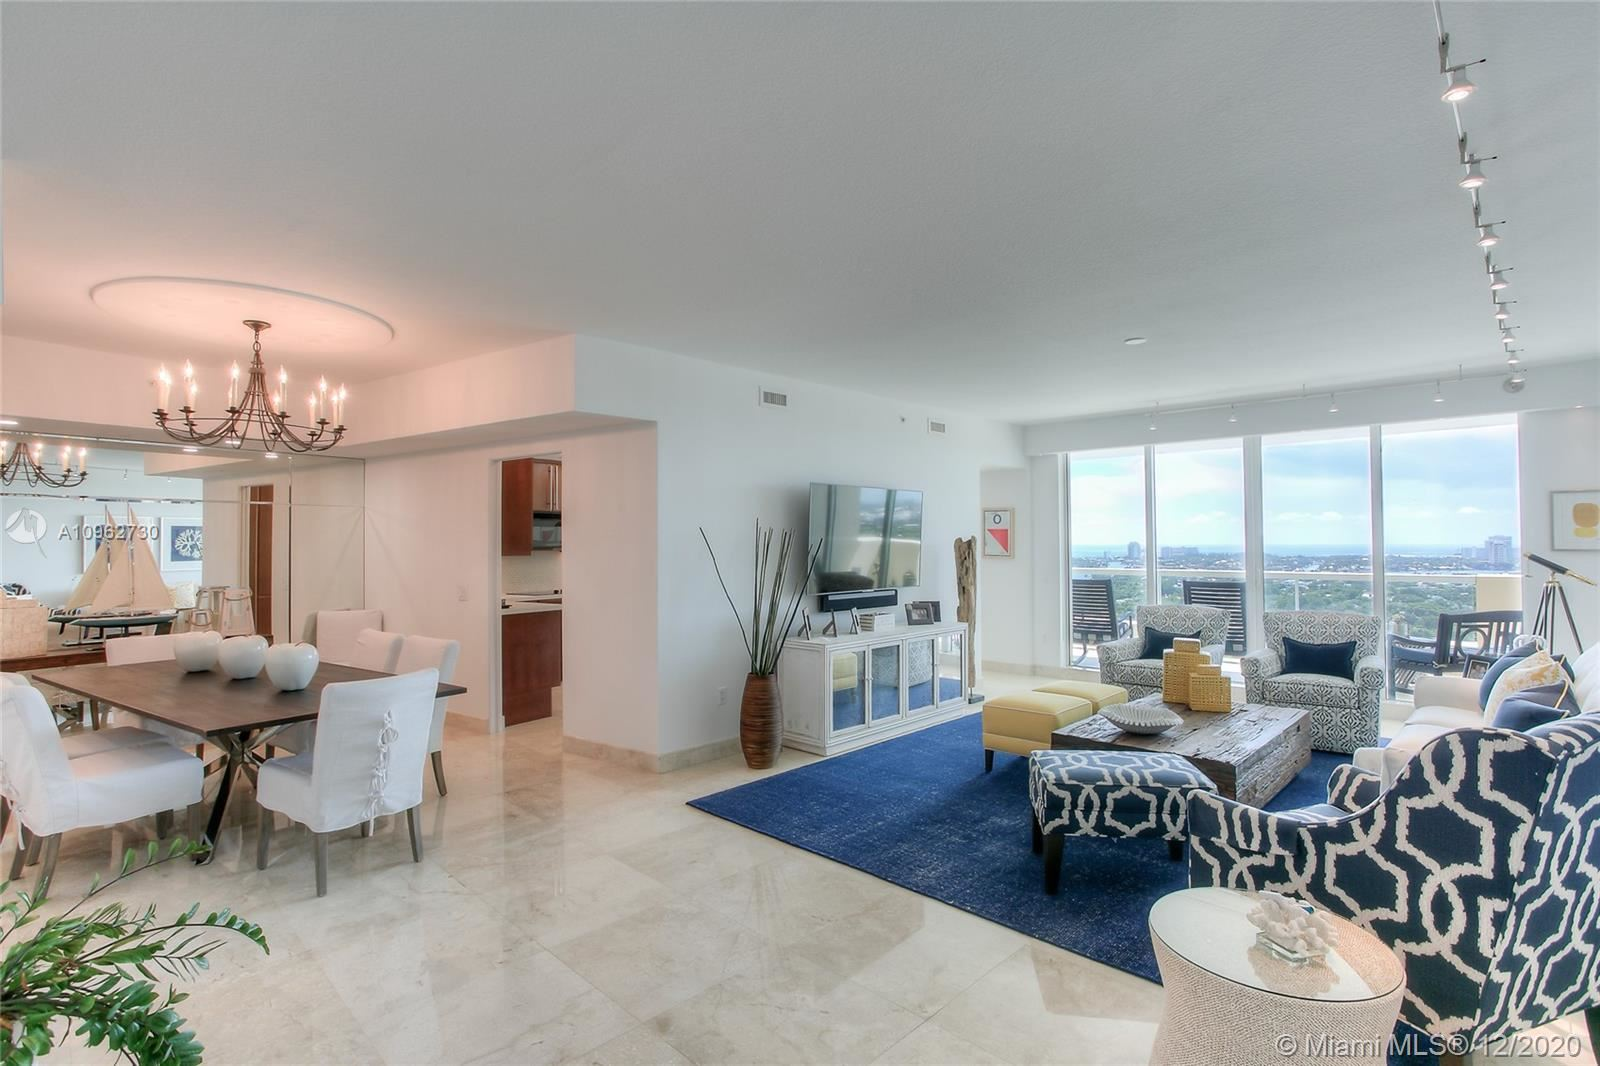 Photo of 411 N New River Dr E #2704, Fort Lauderdale, FL 33301 (MLS # A10962730)